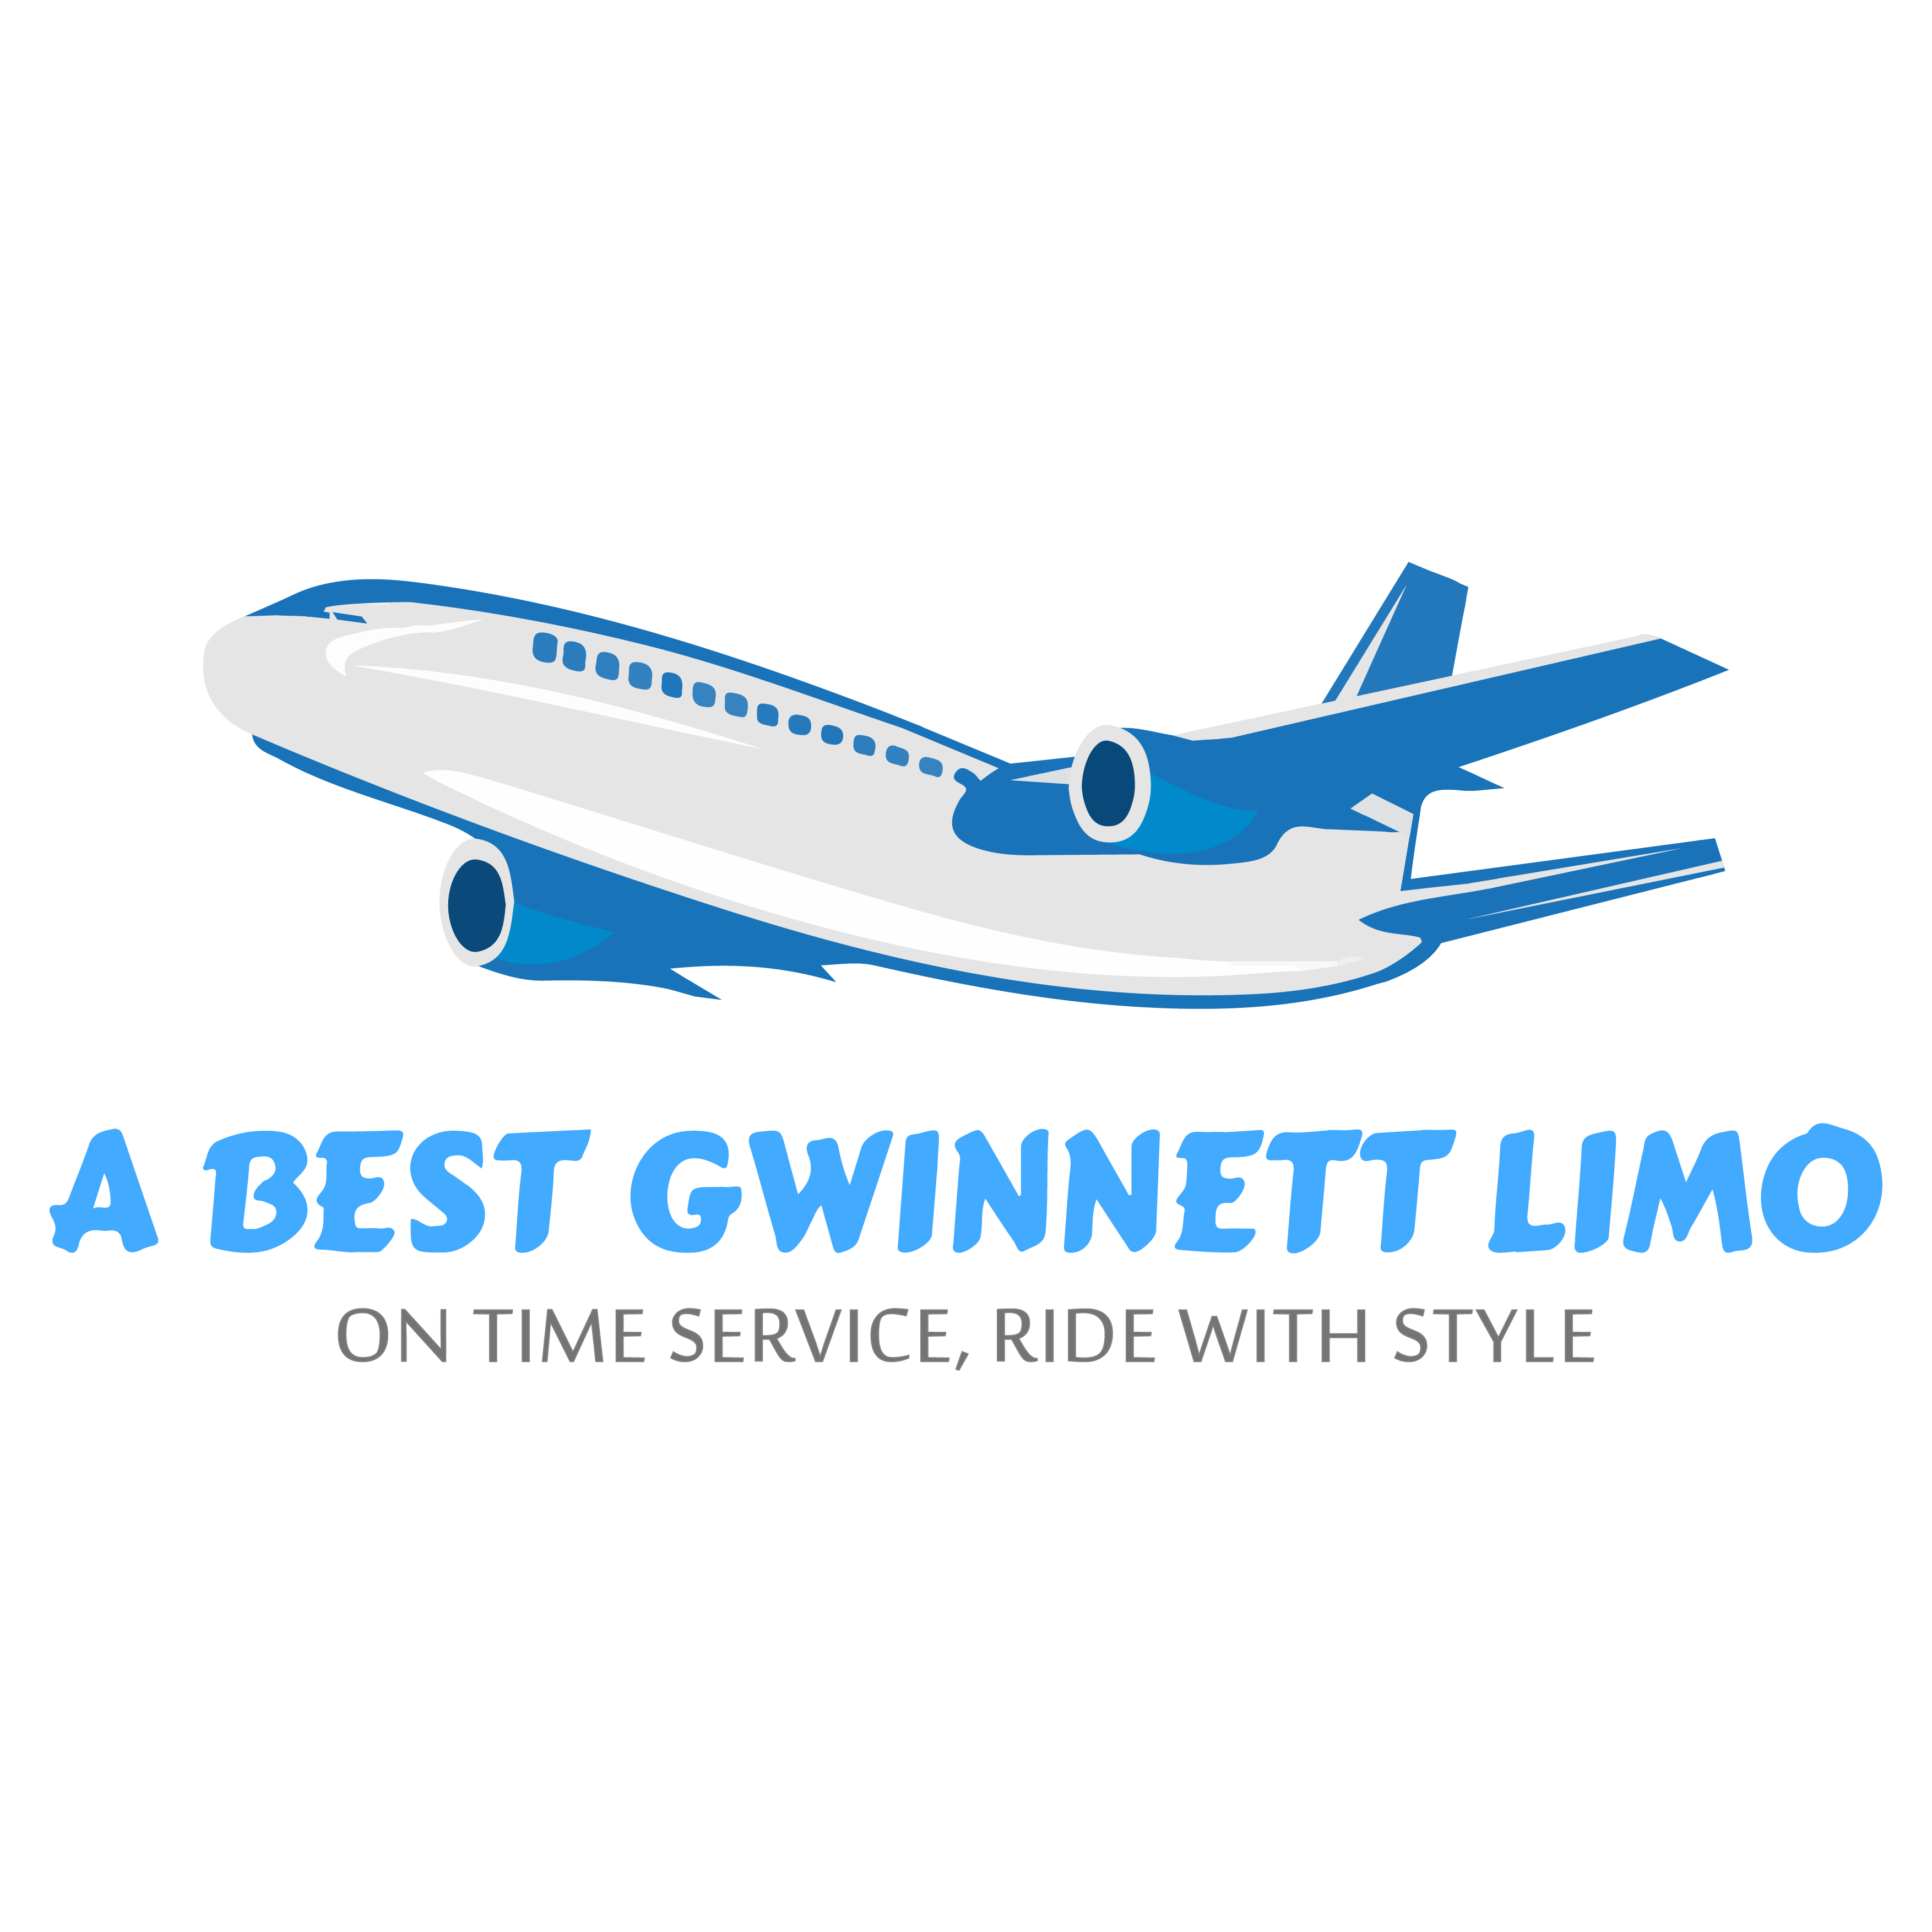 A Best Gwinnett Limo & Taxi Services - Tucker, GA - Taxi Cabs & Limo Rental